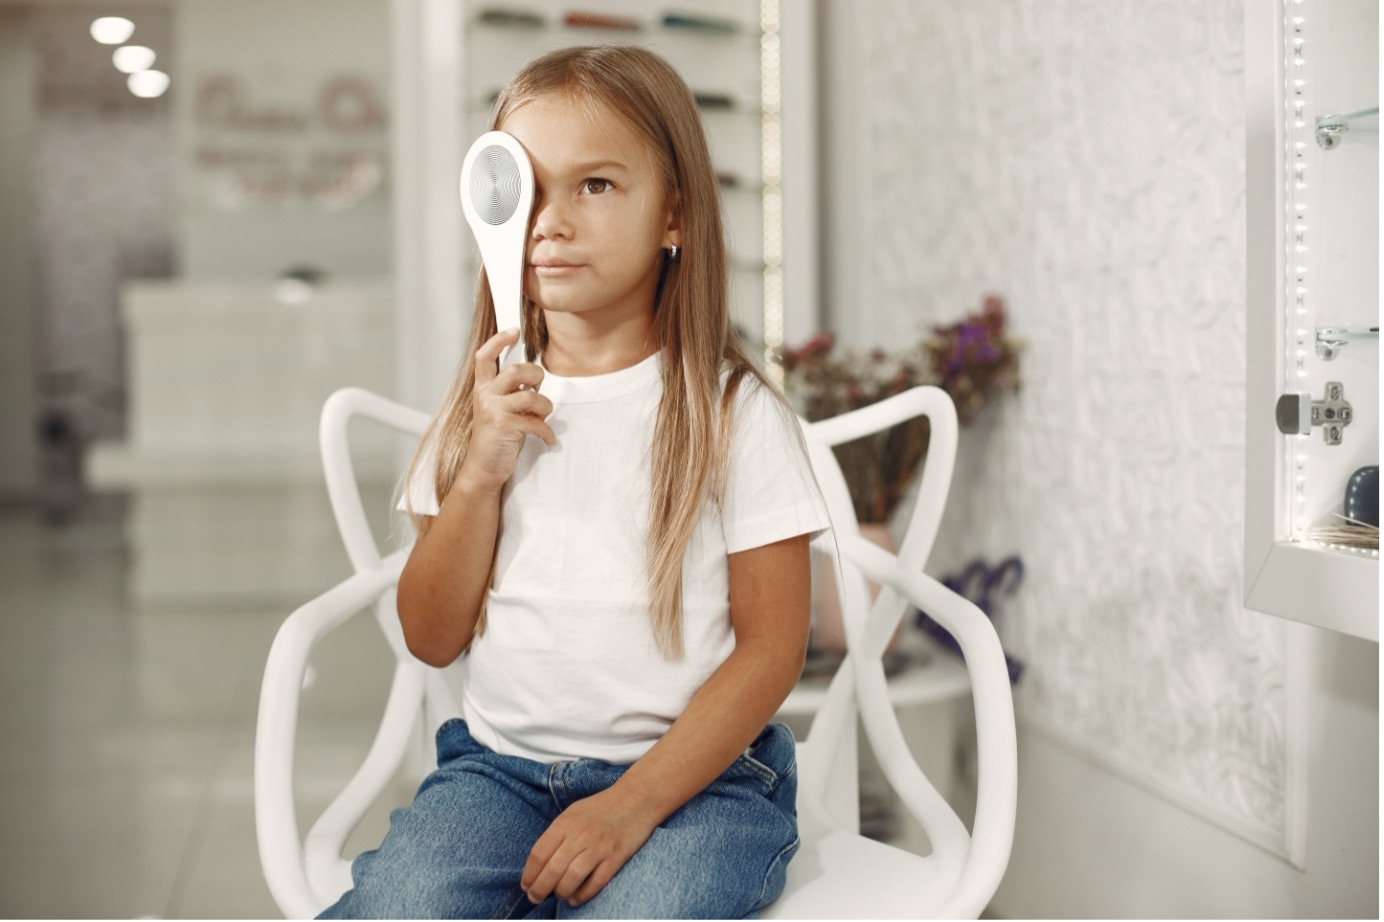 Girl istting in white chair holding an eye tester over one eye.